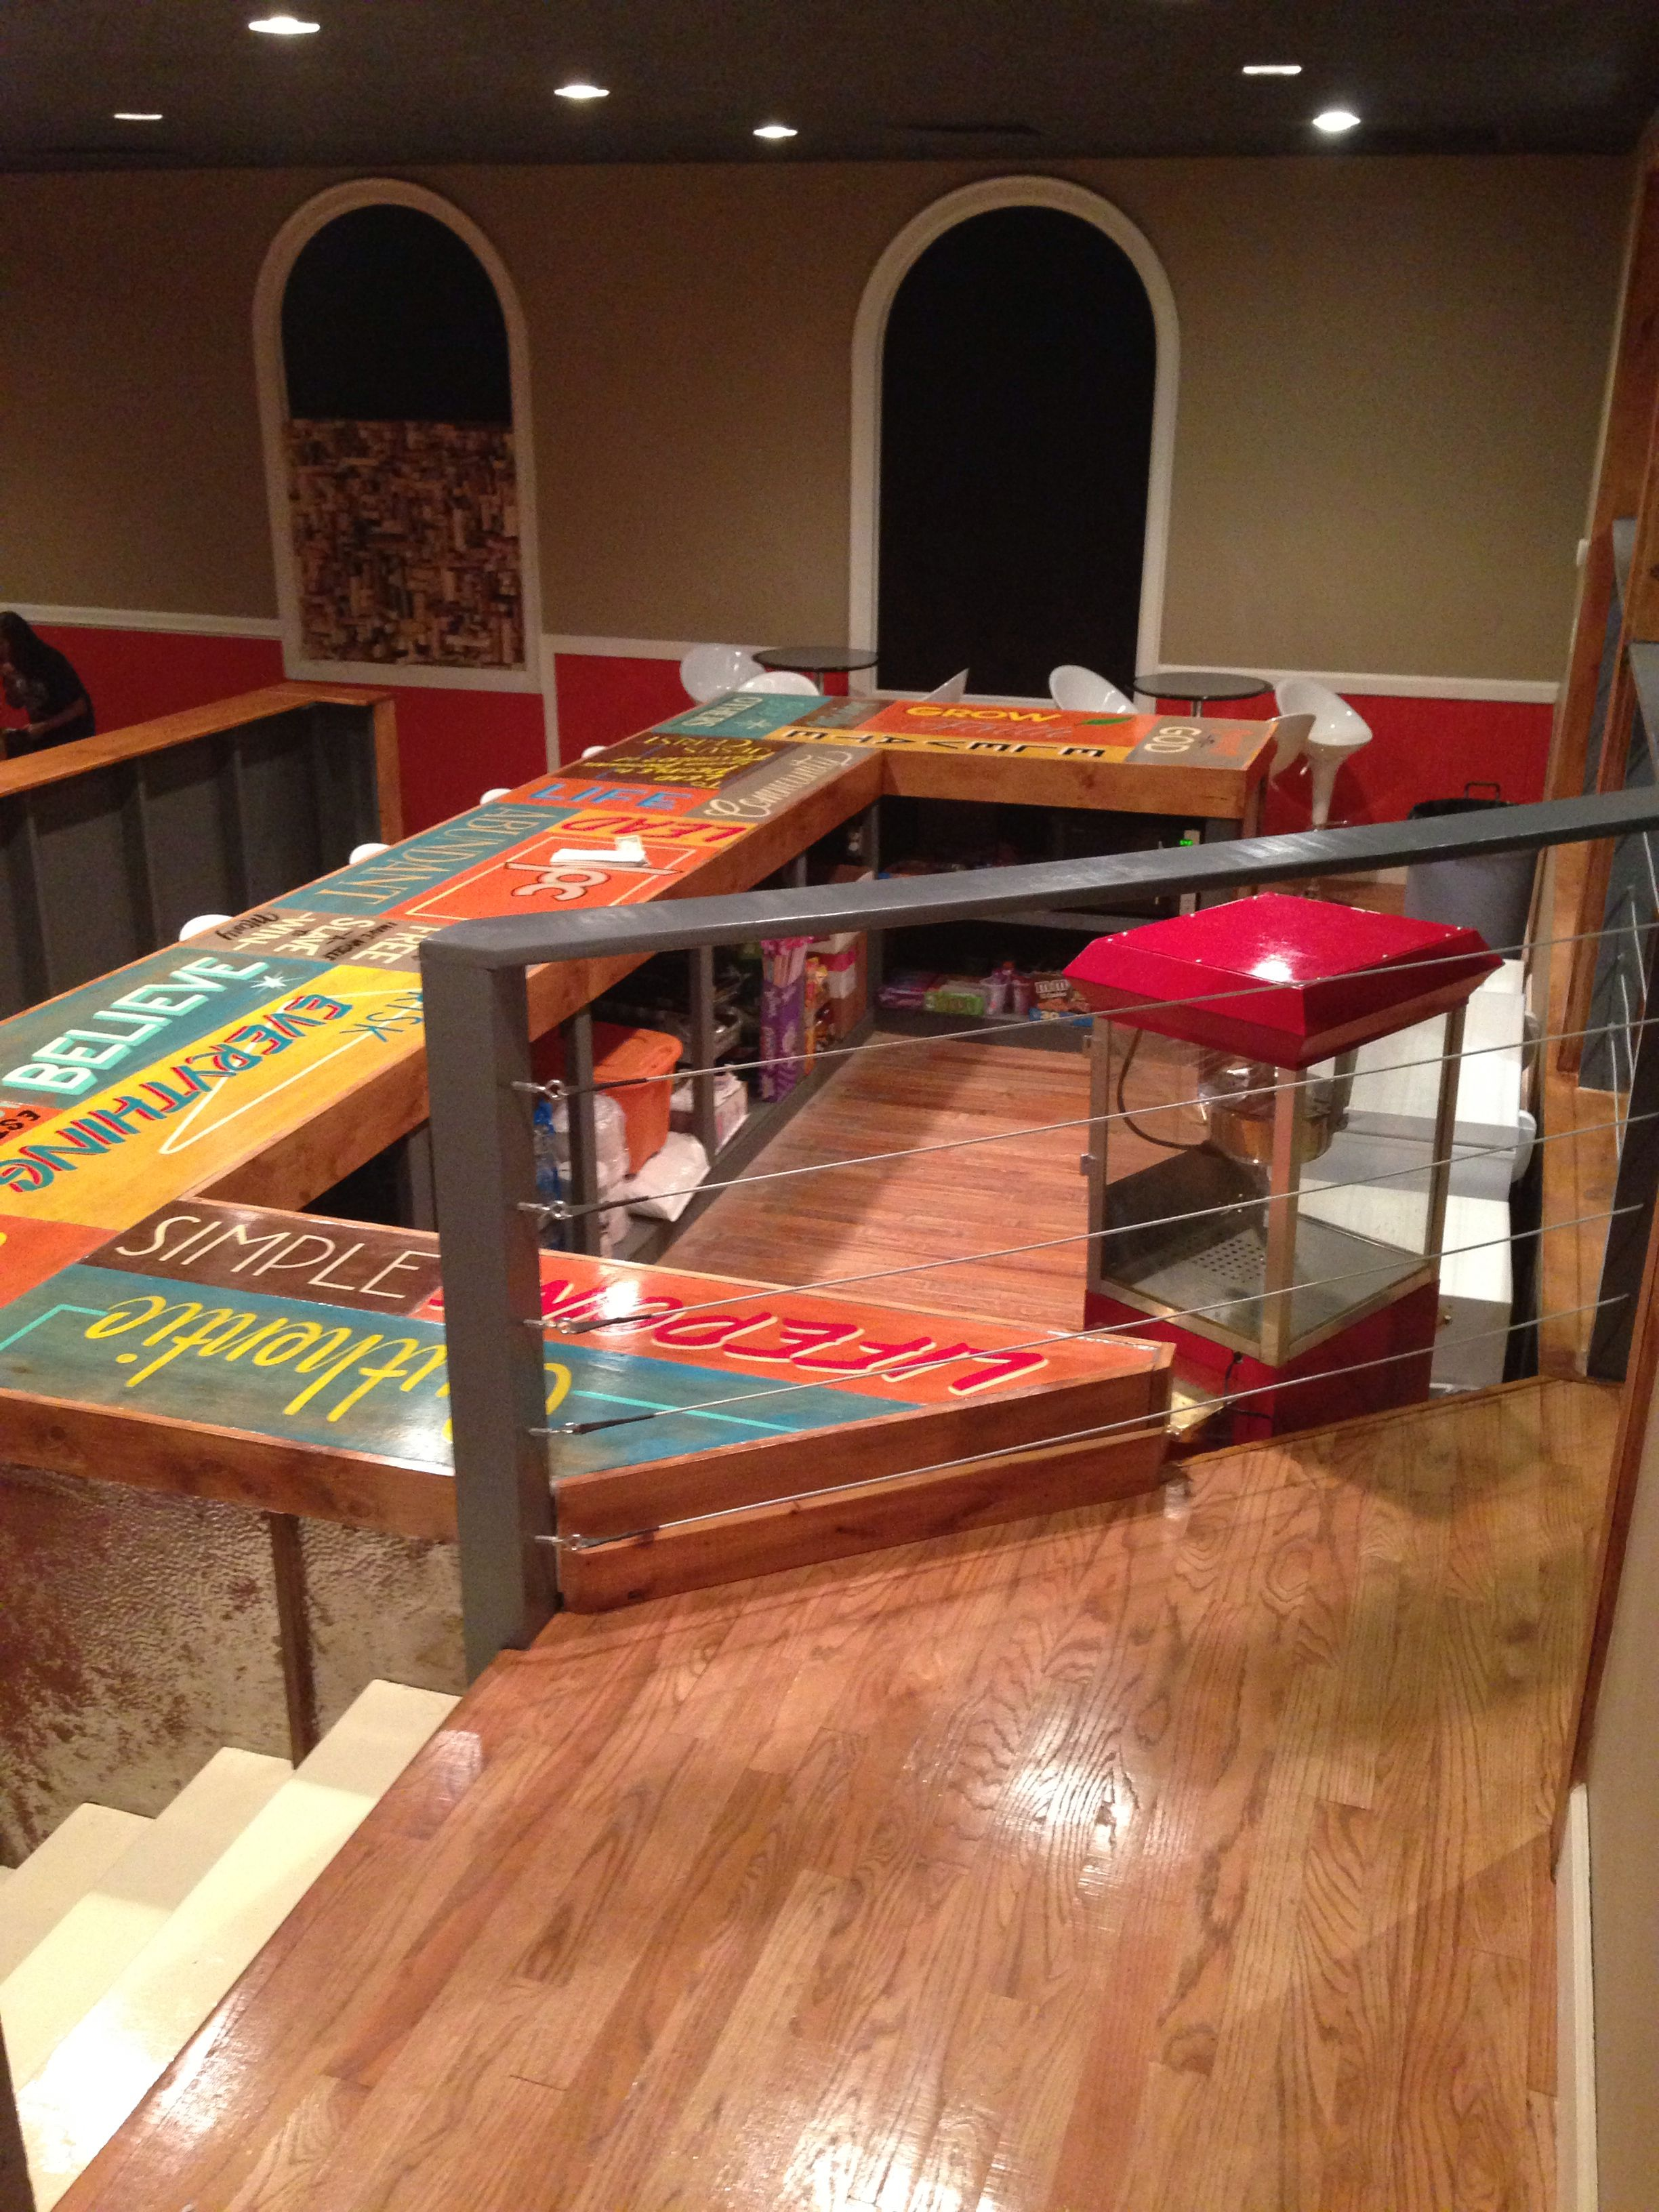 Church Youth Room Ideas Stage: Hand Painted Sign Countertop By Chastin Brand. Church